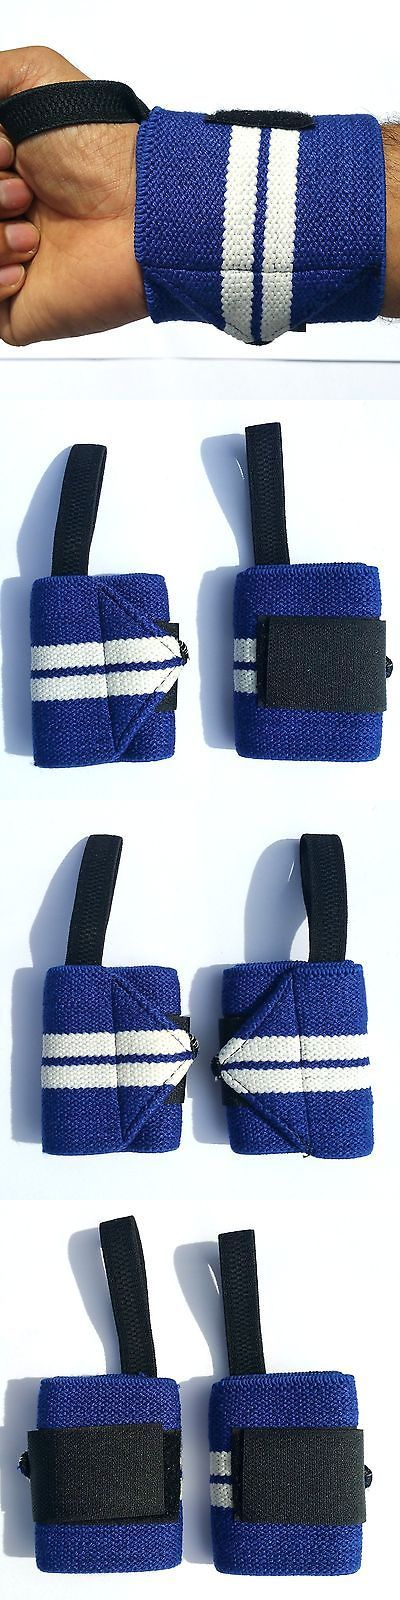 Wrist and Knee Wraps 179821: Weight Lifting Wrist Wraps Gym Training Support Fitness Cotton Bandage Straps Us BUY IT NOW ONLY: $296.49